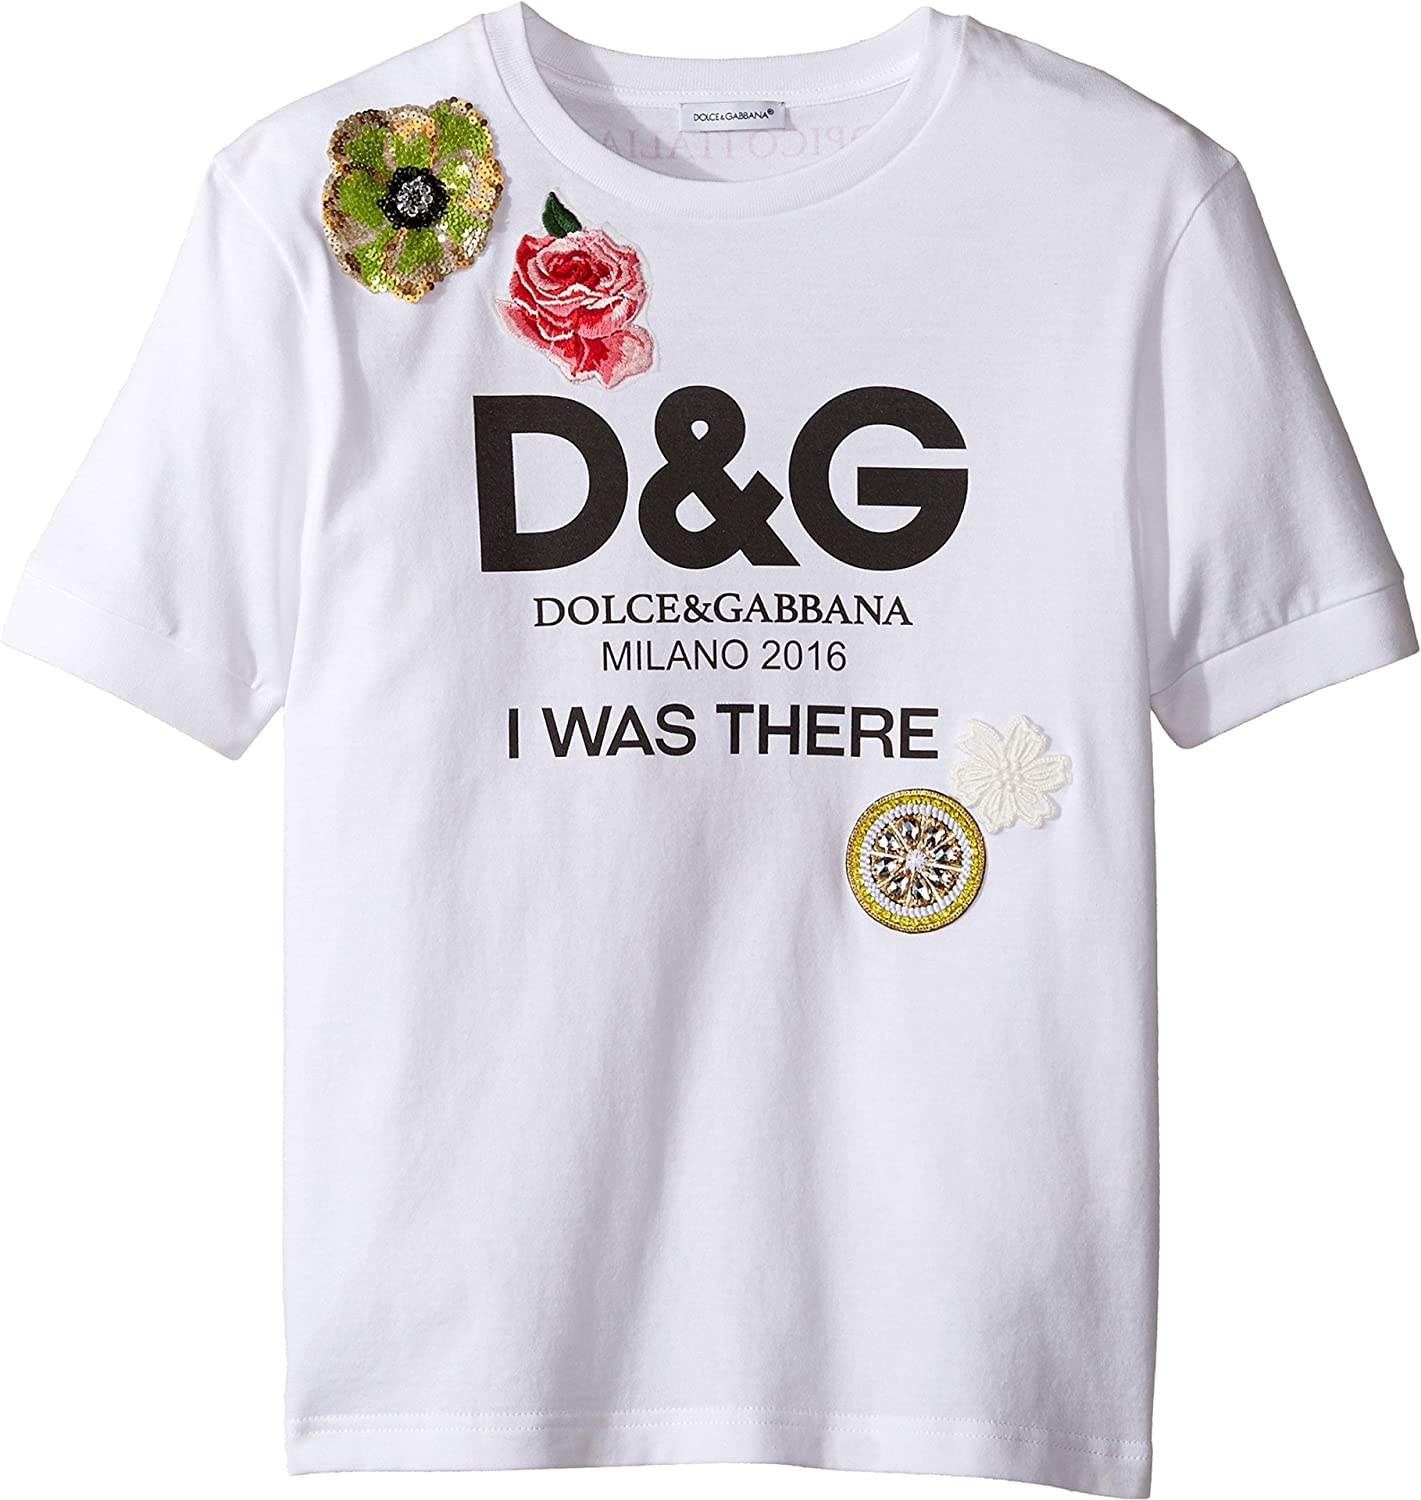 f72b73210 Amazon.com: Dolce & Gabbana Kids Baby Girl's I was There Tee (Toddler/Little  Kids) White Print T-Shirt: Clothing